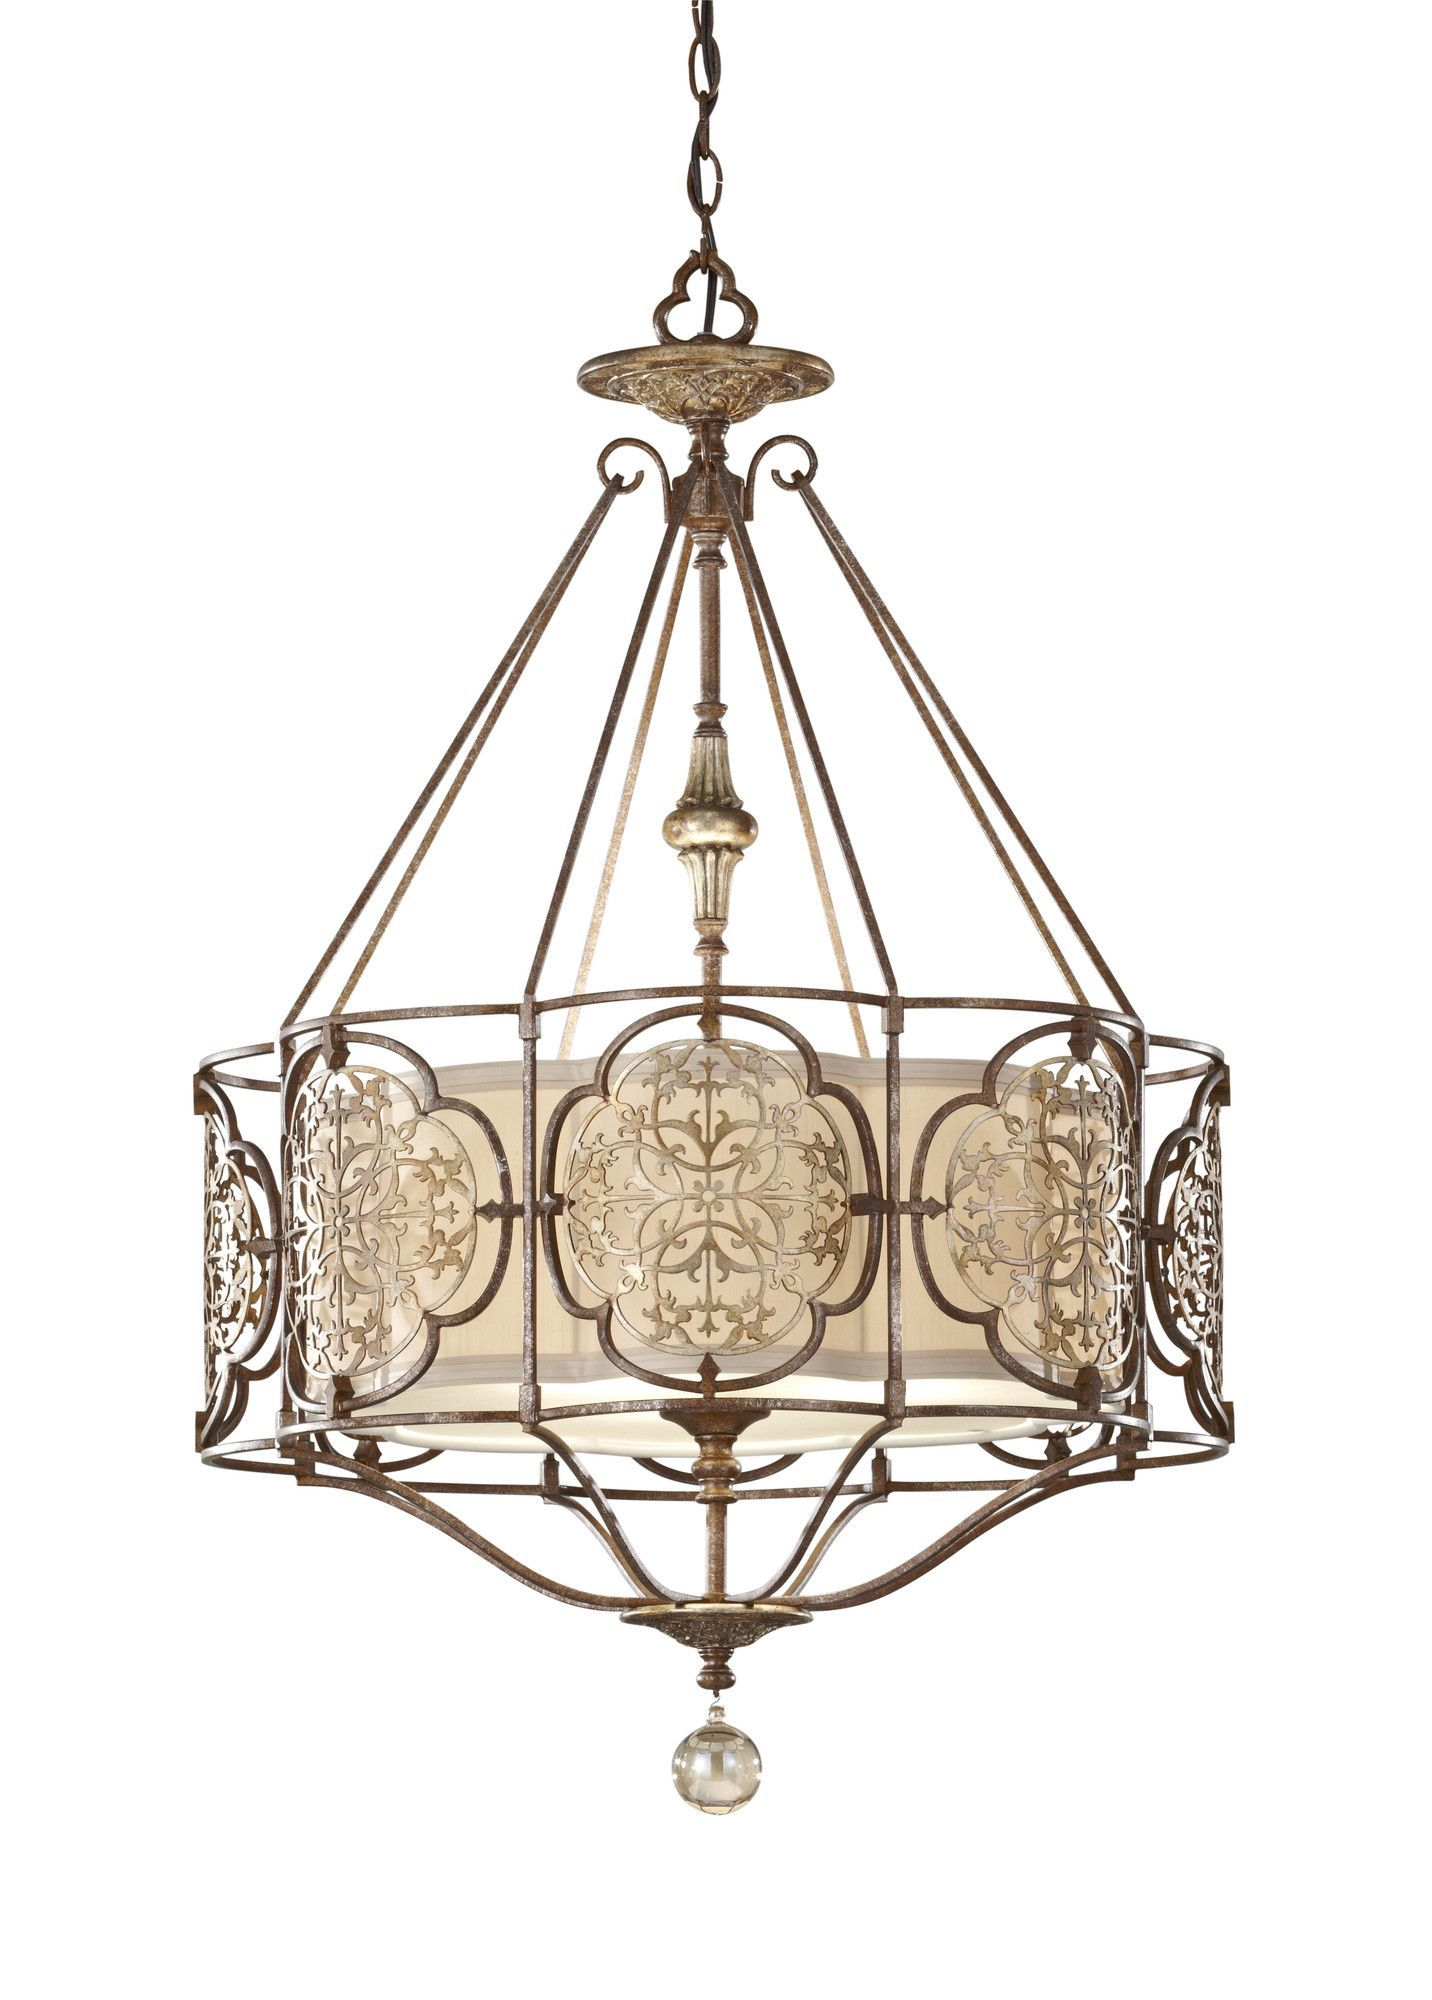 Marcella 3 Light Large Pendant | Mountain view home | Pinterest | Lights